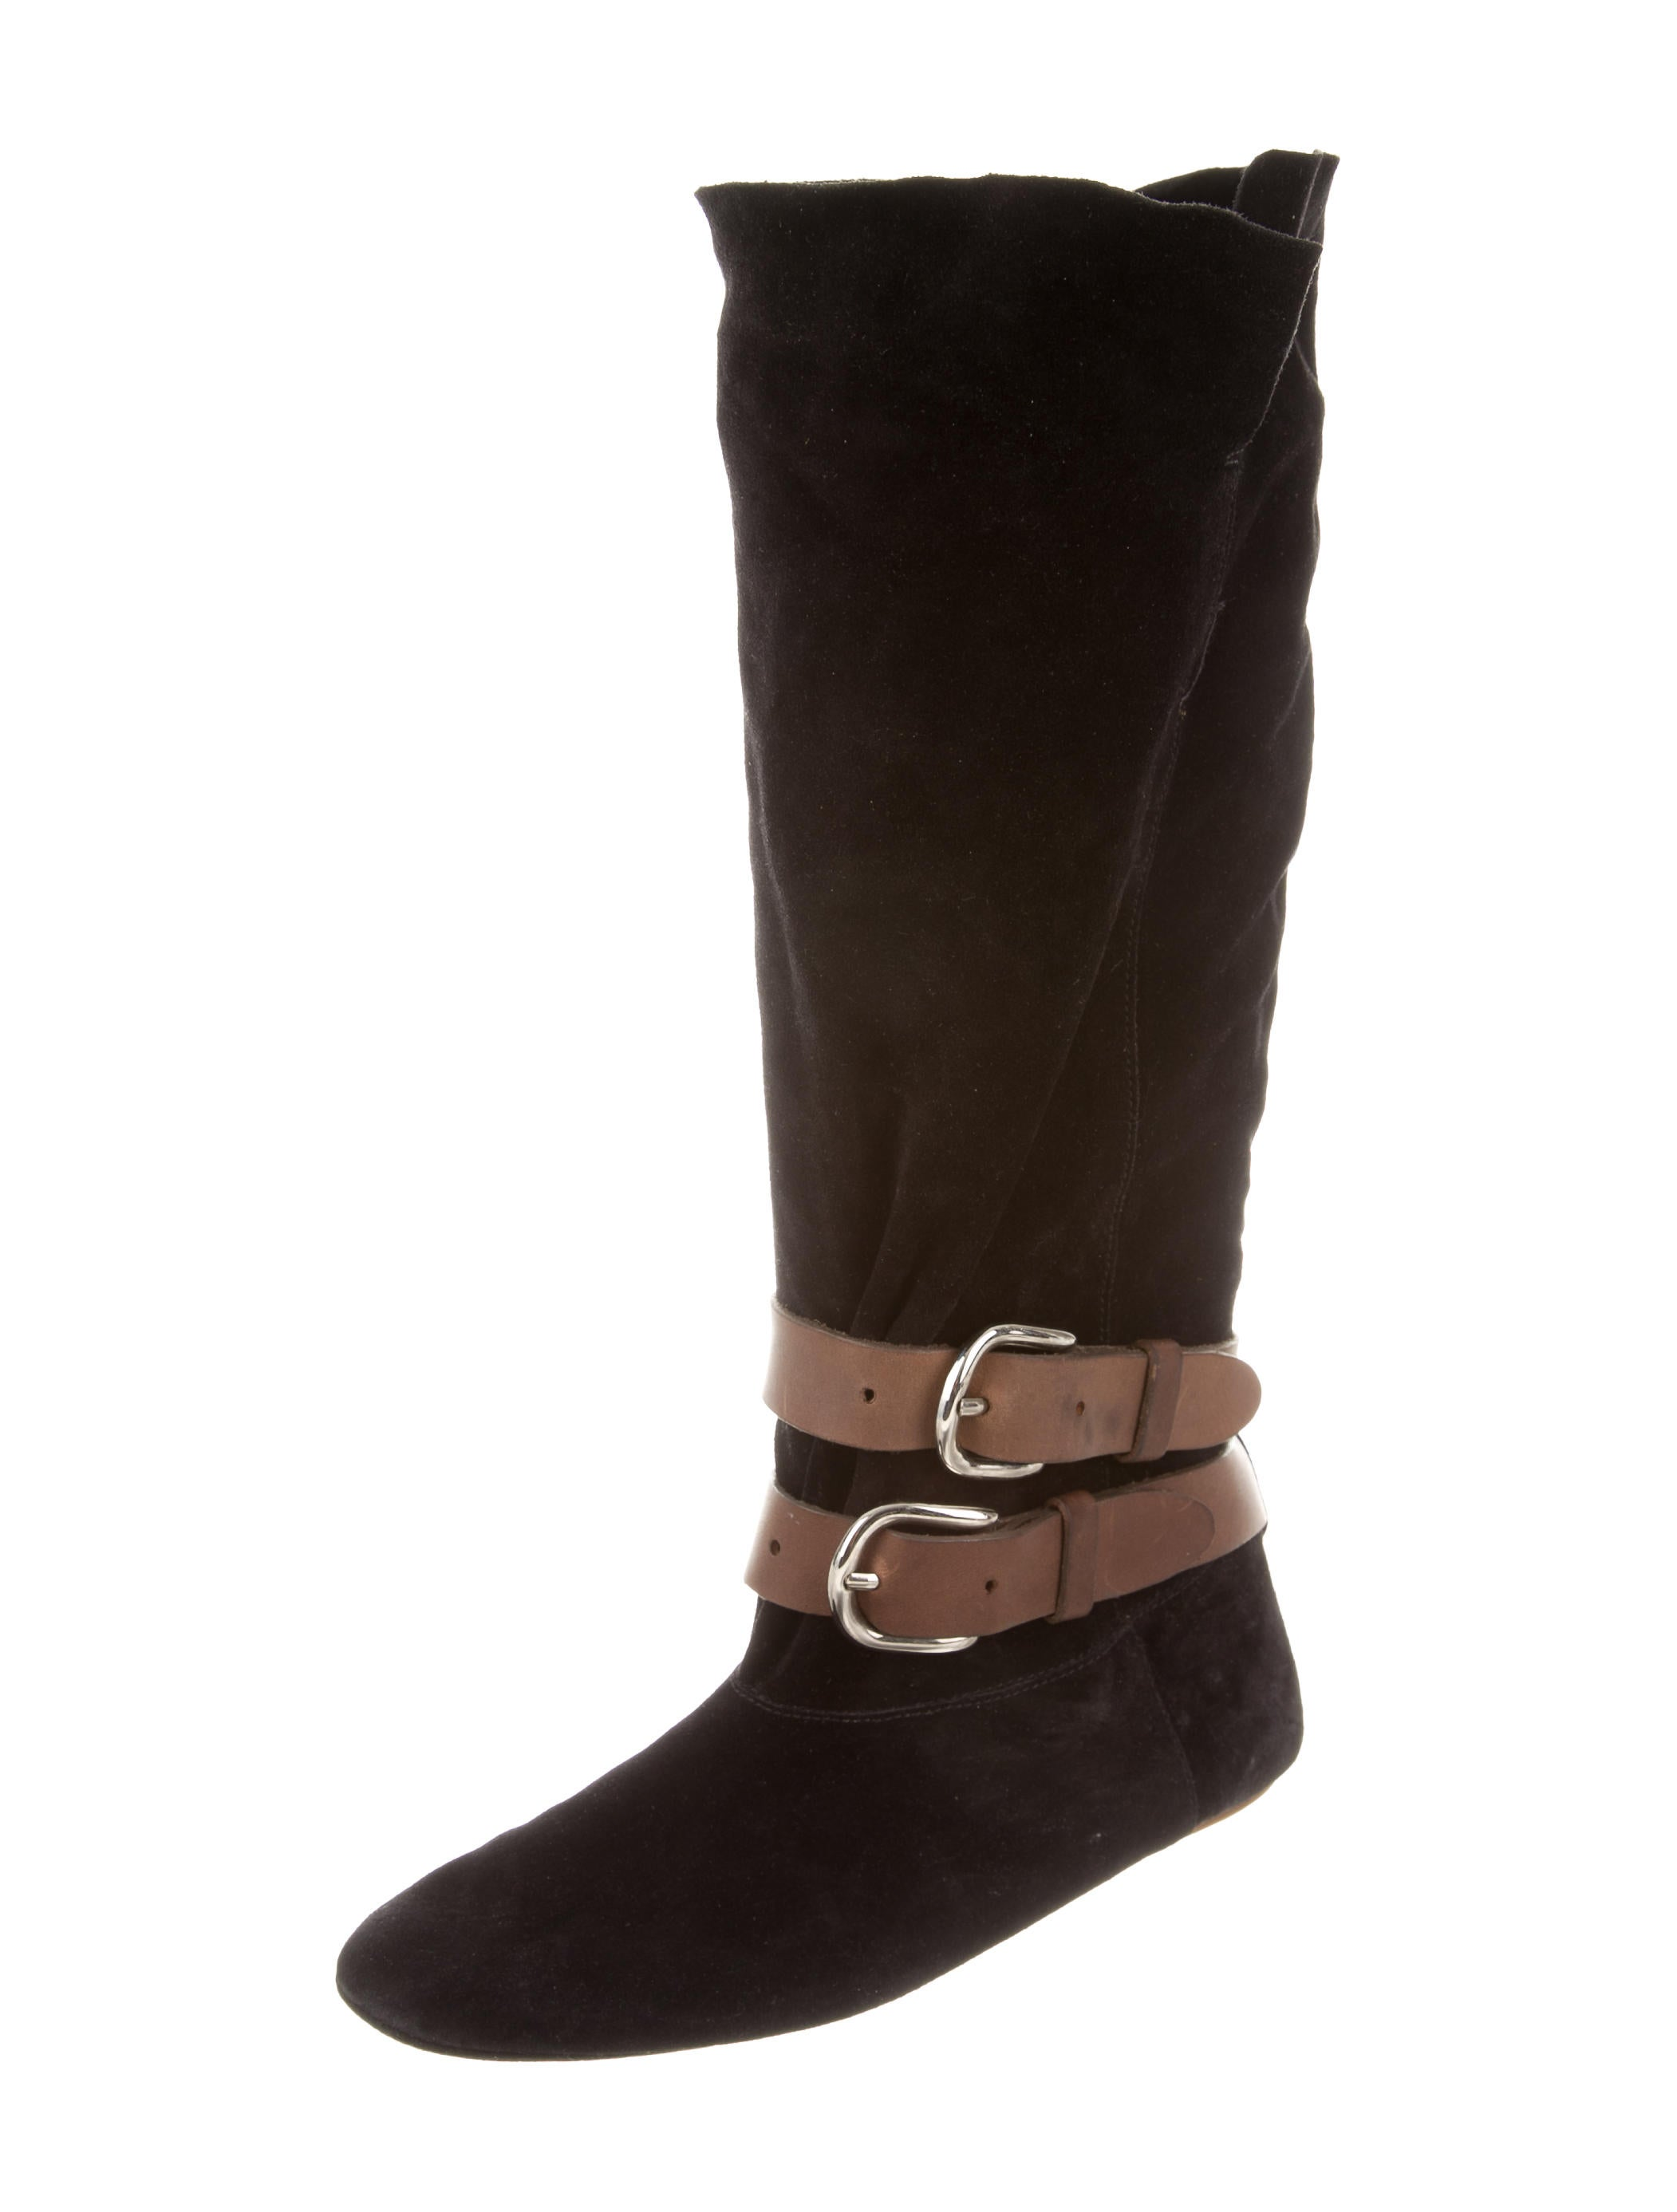 marant suede leather knee high boots shoes